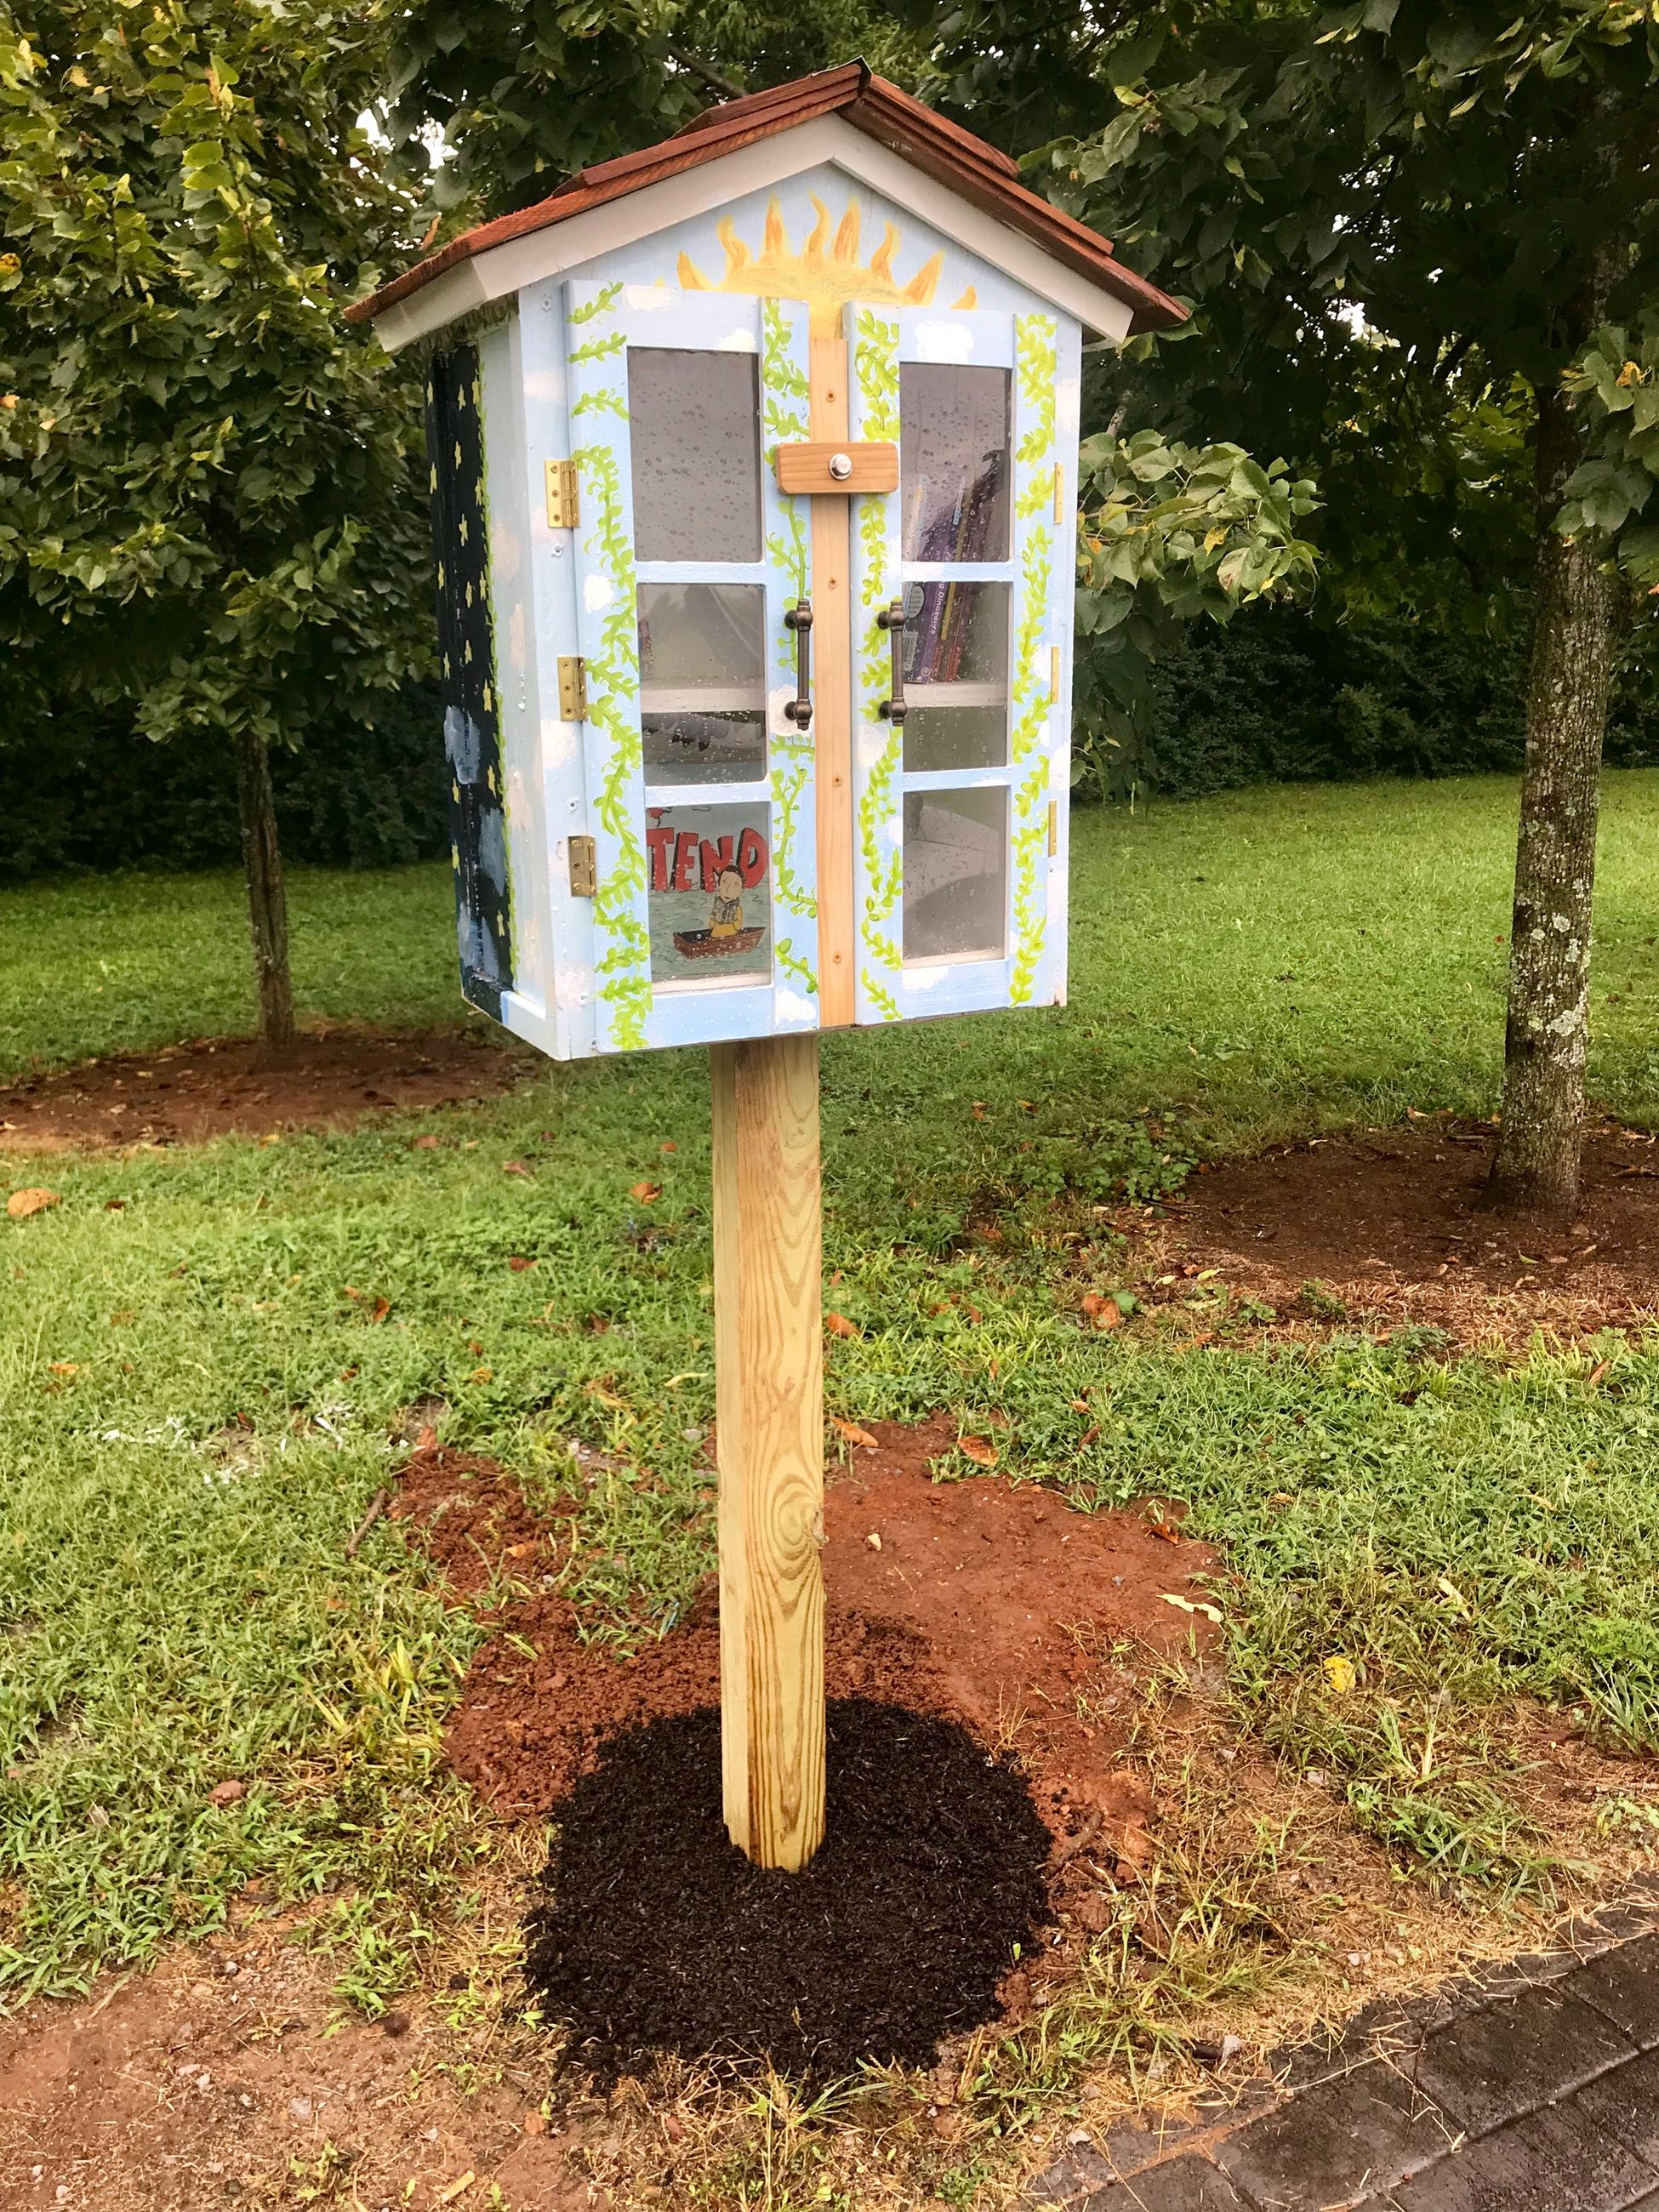 Little Library located on the Breezeway Restorative Trail built & painted by local students